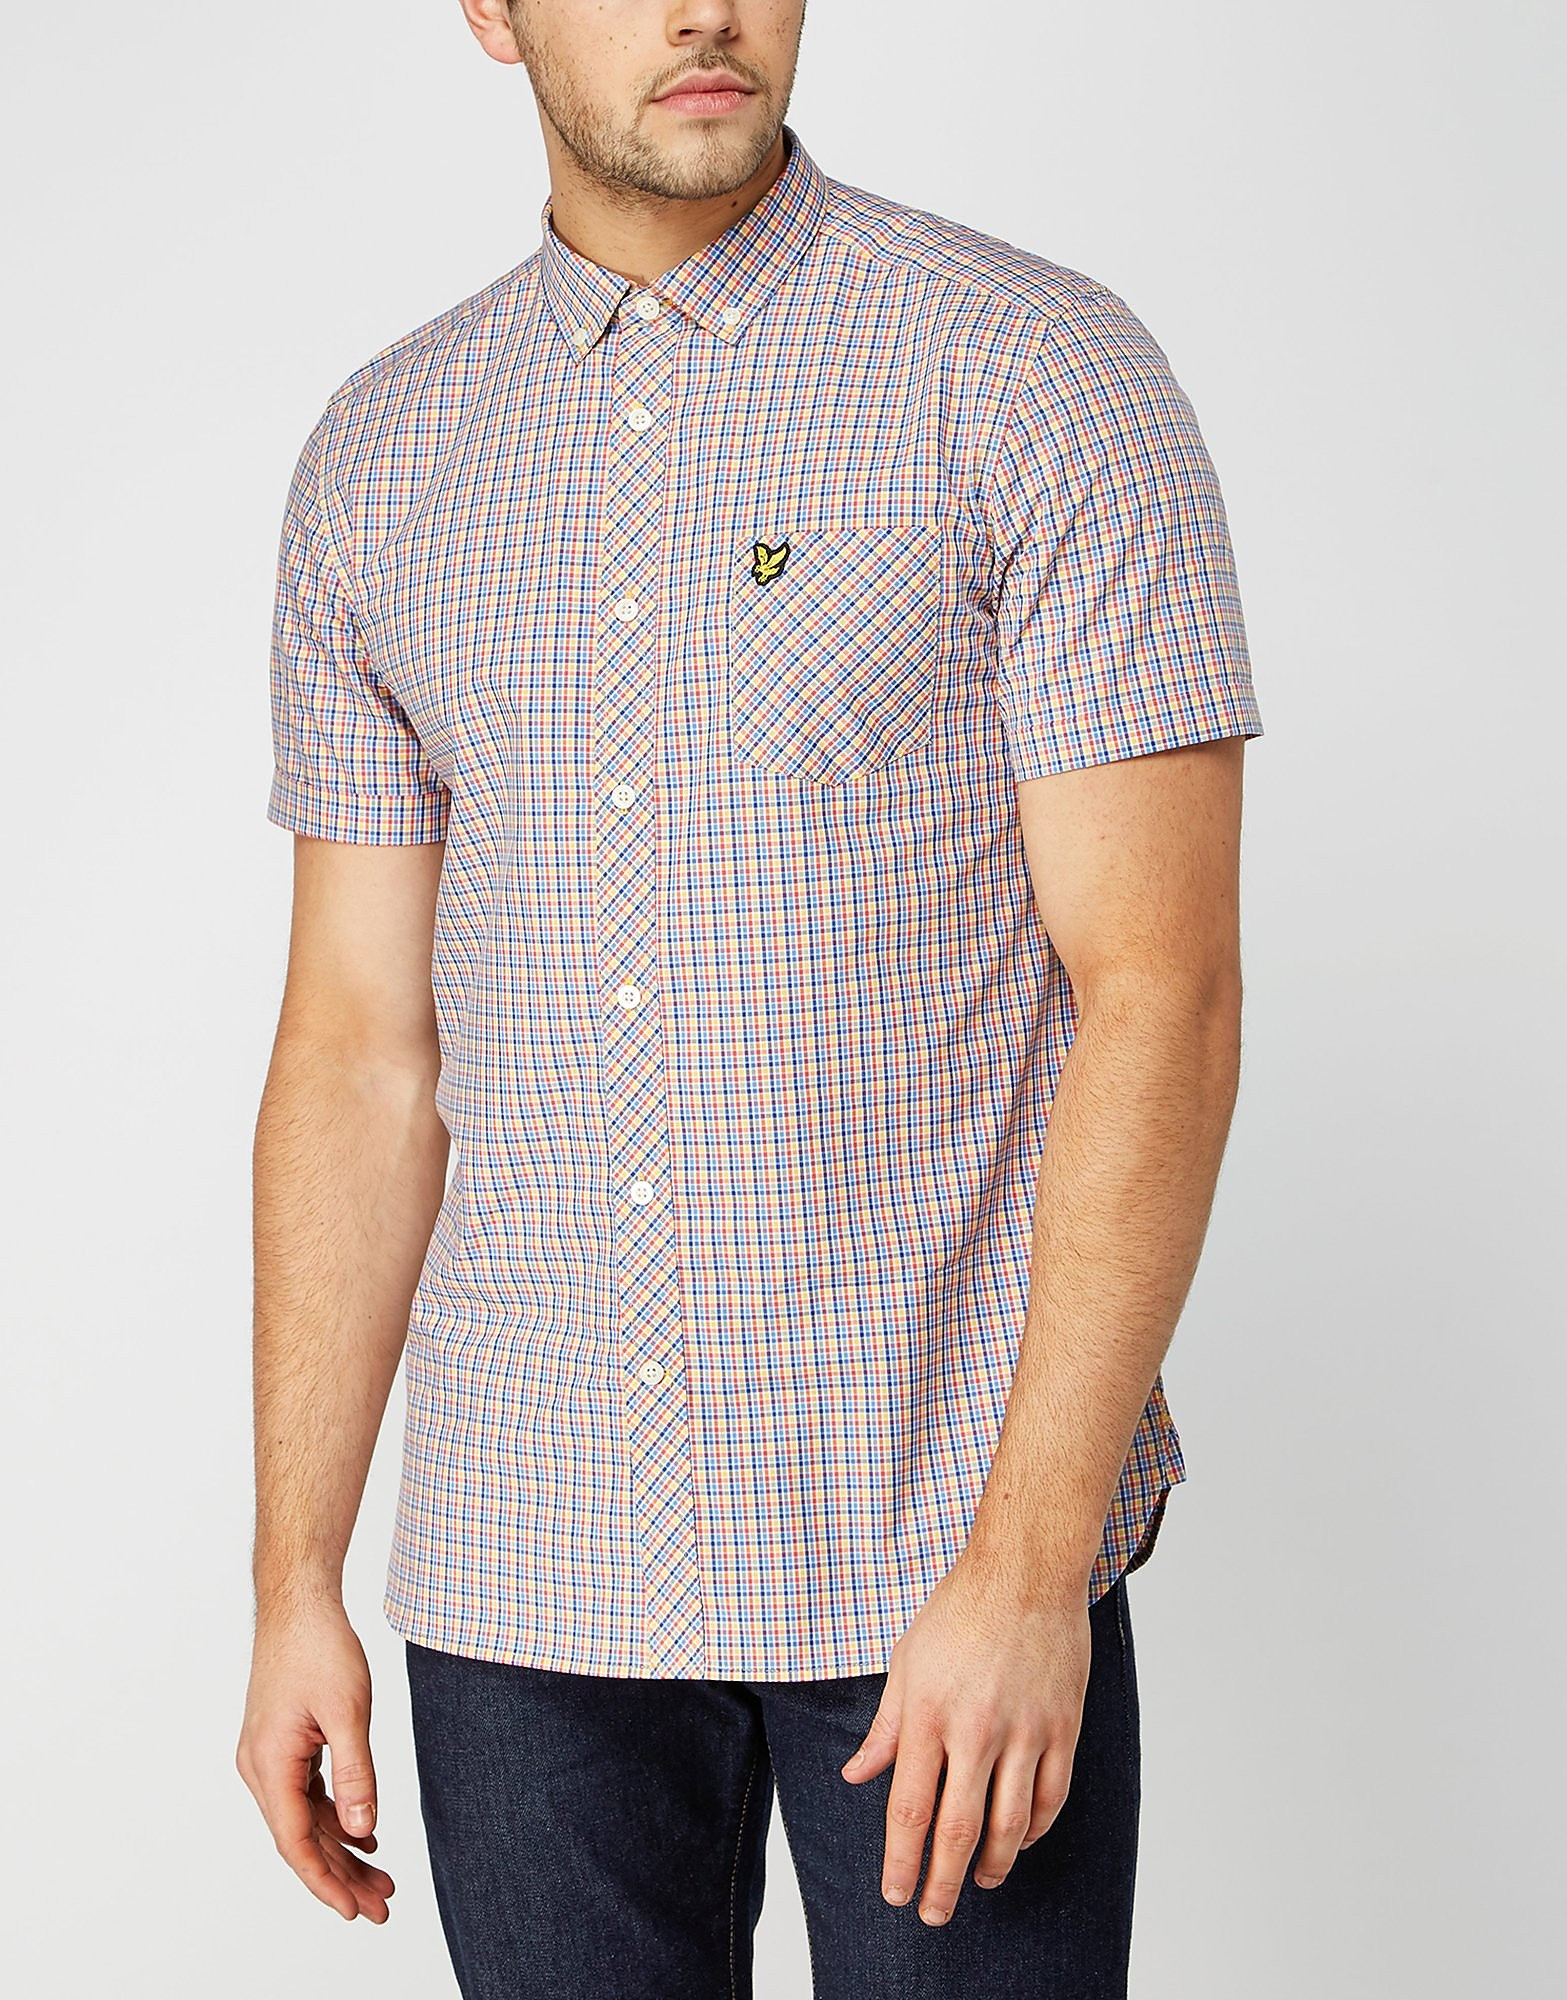 Lyle & Scott Short Sleeved Checked Shirt